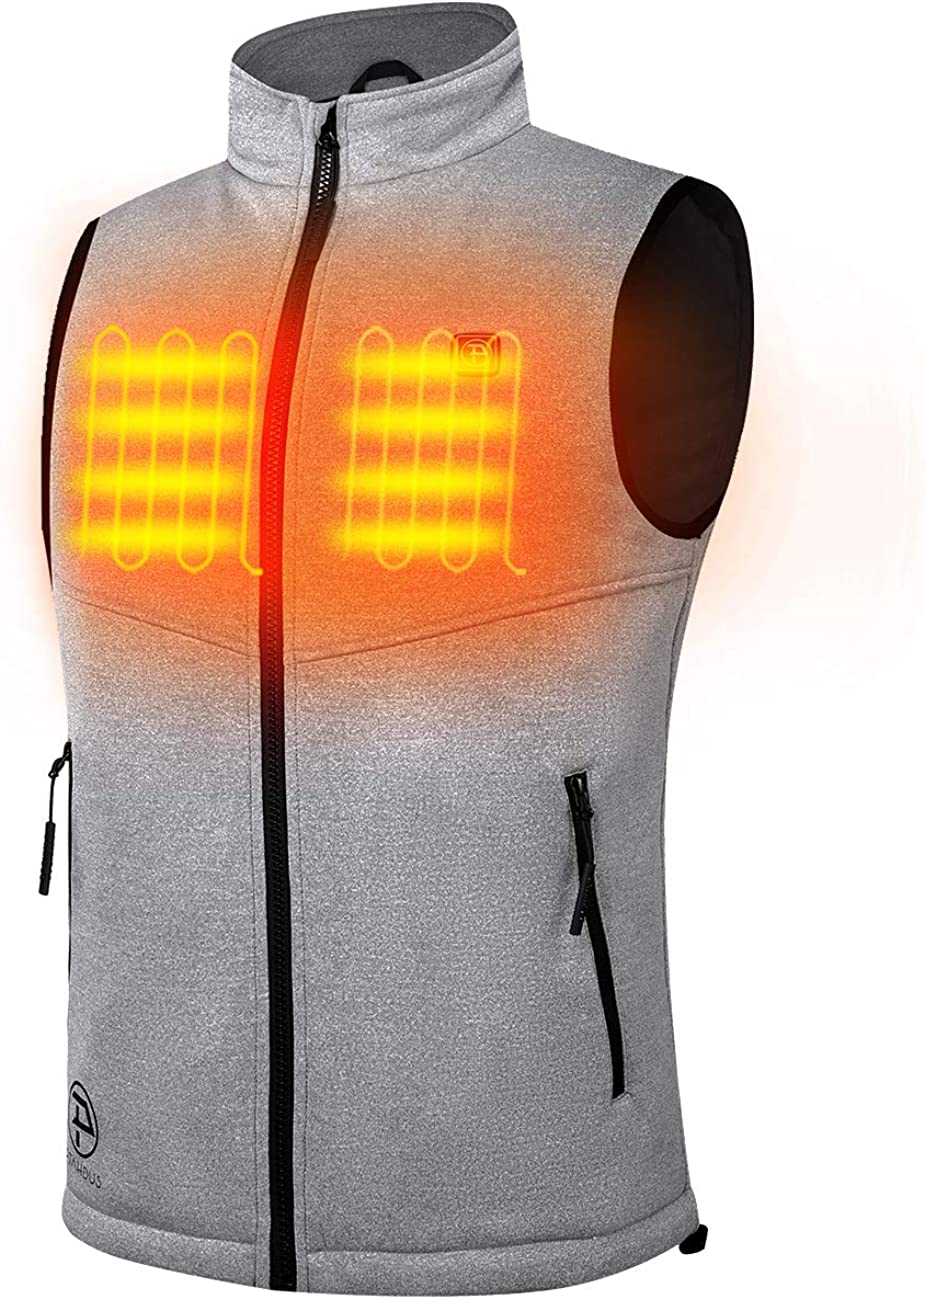 PTAHDUS Men's Lightweight Heated Vest with 7.4V Rechargeable Battery Pack